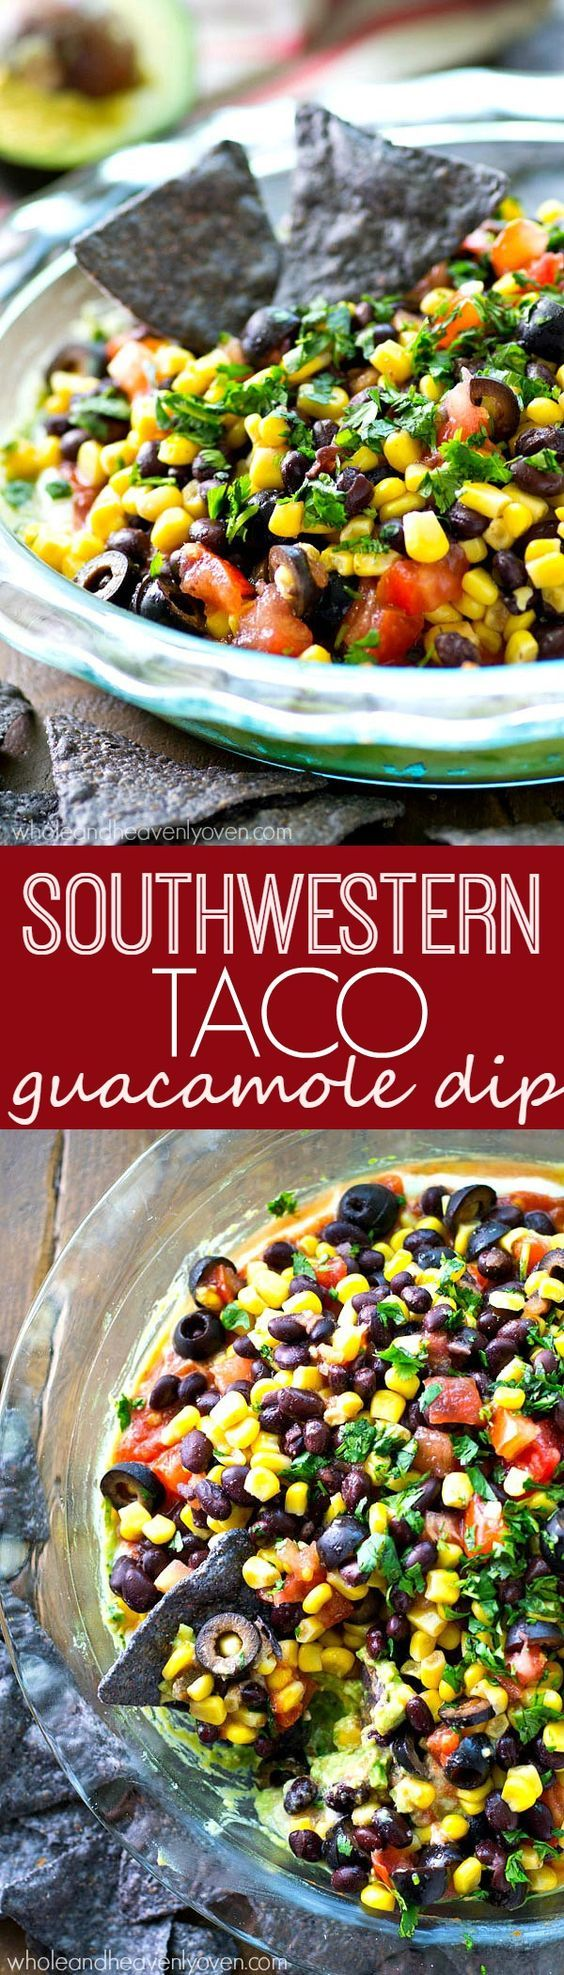 This colorful Southwestern-style taco dip will be the biggest hit of your party.---So many layers of homemade guacamole and all your favorite taco toppings!